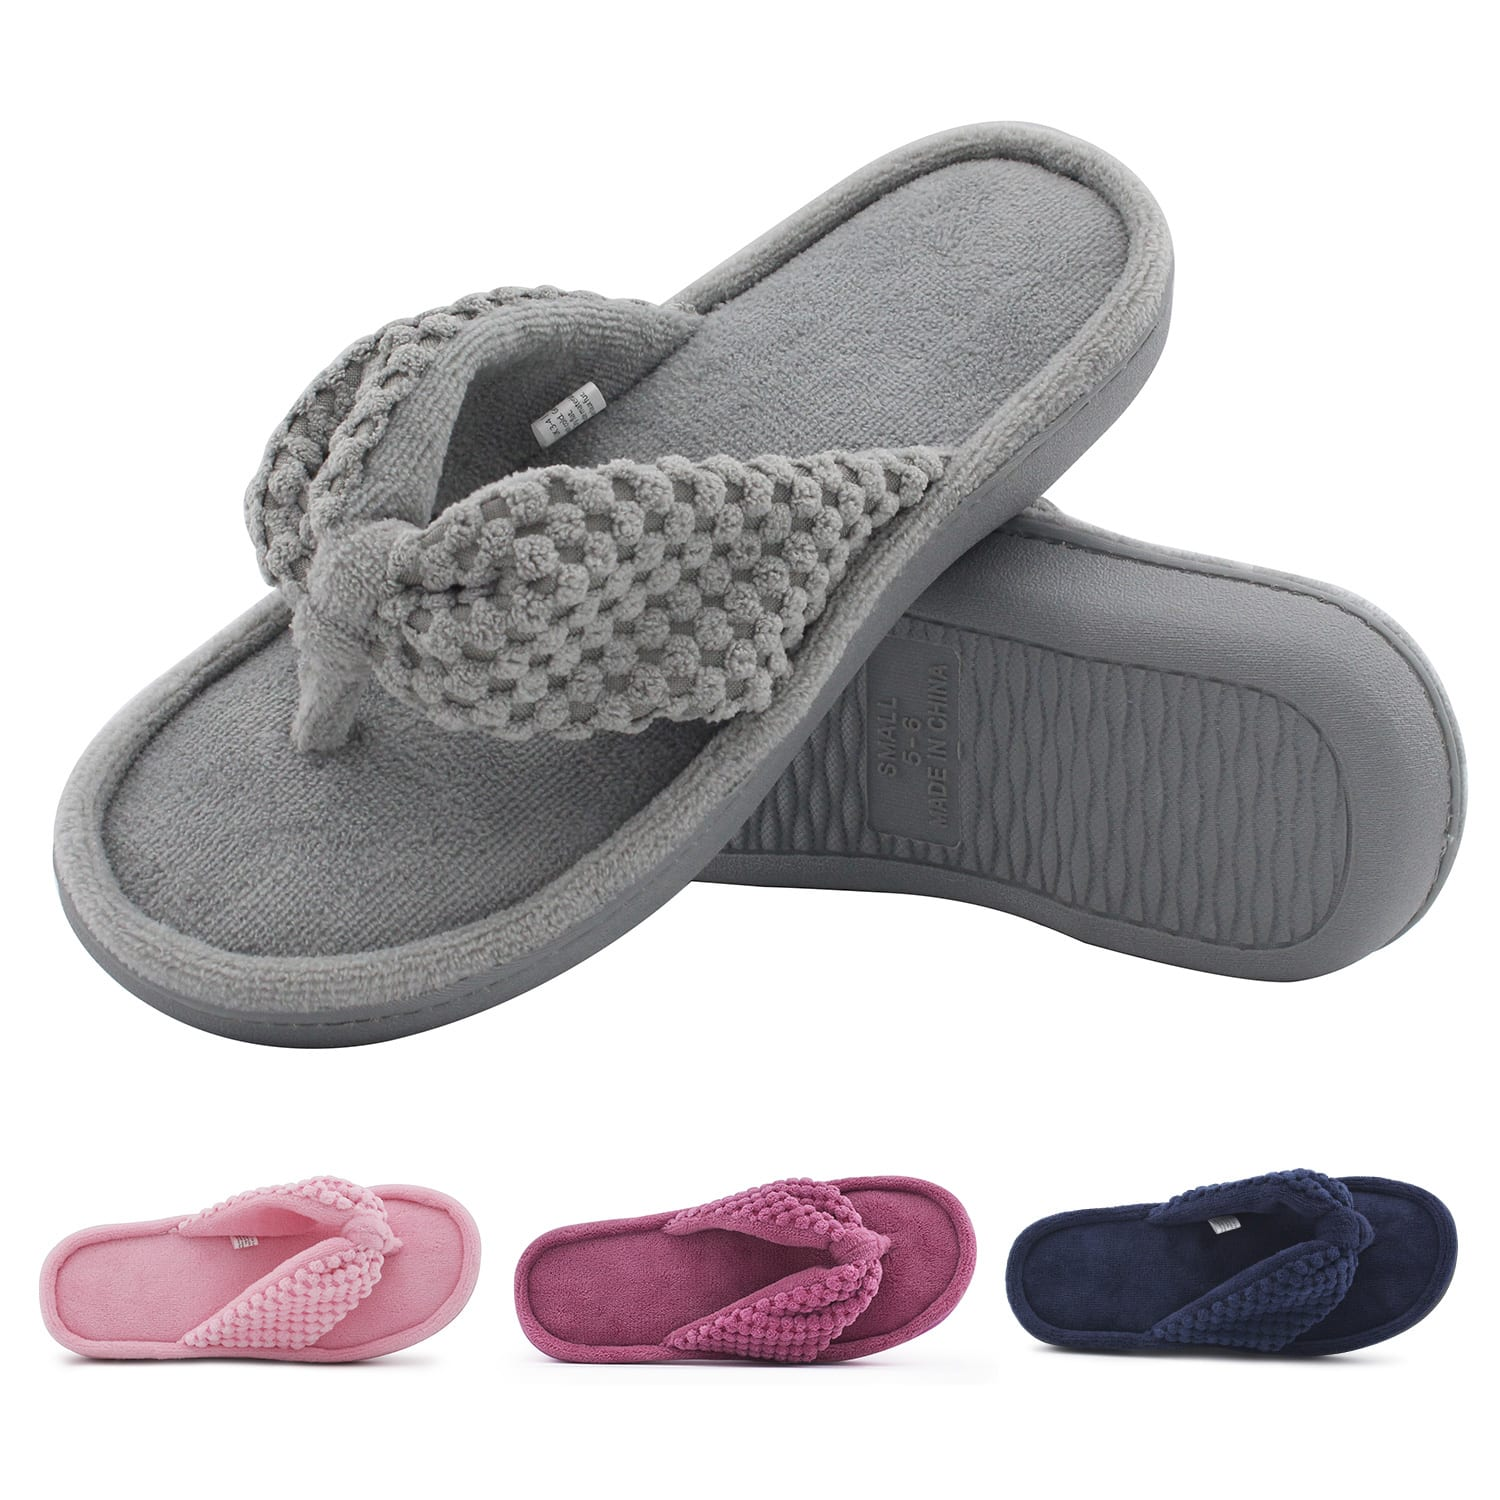 Women's Cozy Memory Foam Plush Gridding Velvet Lining Spa Thong Flip Flops Clog Style House Indoor Slippers 30% OFF @$13.29+FS